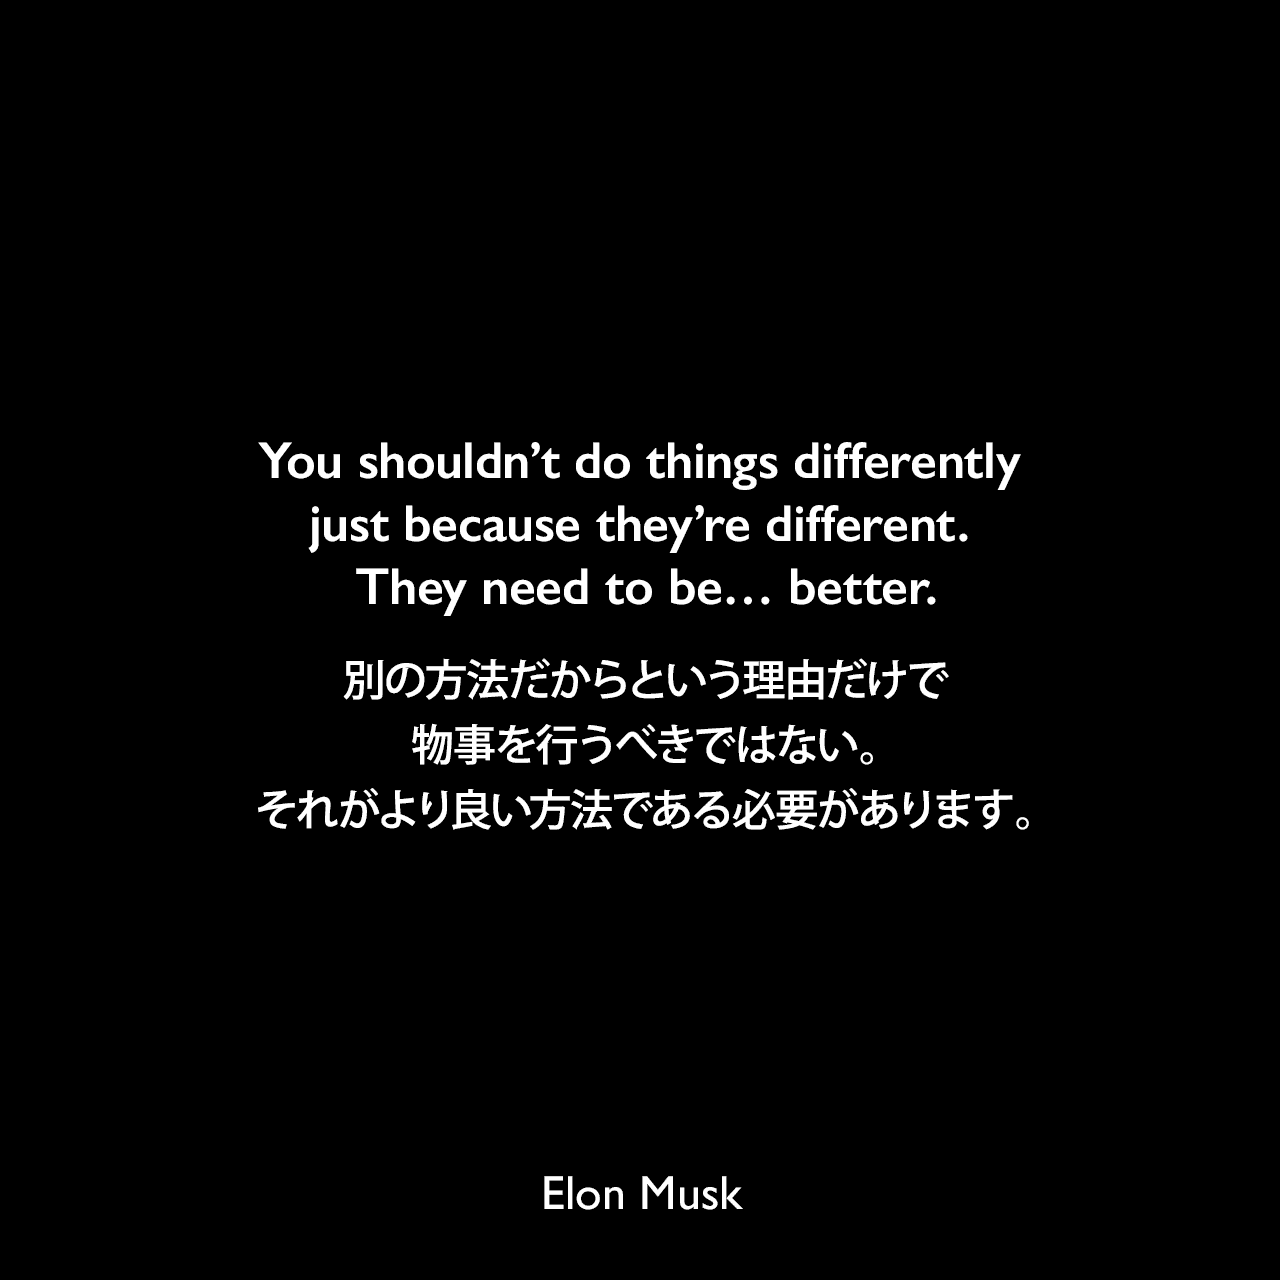 You shouldn't do things differently just because they're different. They need to be… better.別の方法だからという理由だけで物事を行うべきではない。それがより良い方法である必要があります。Elon Musk